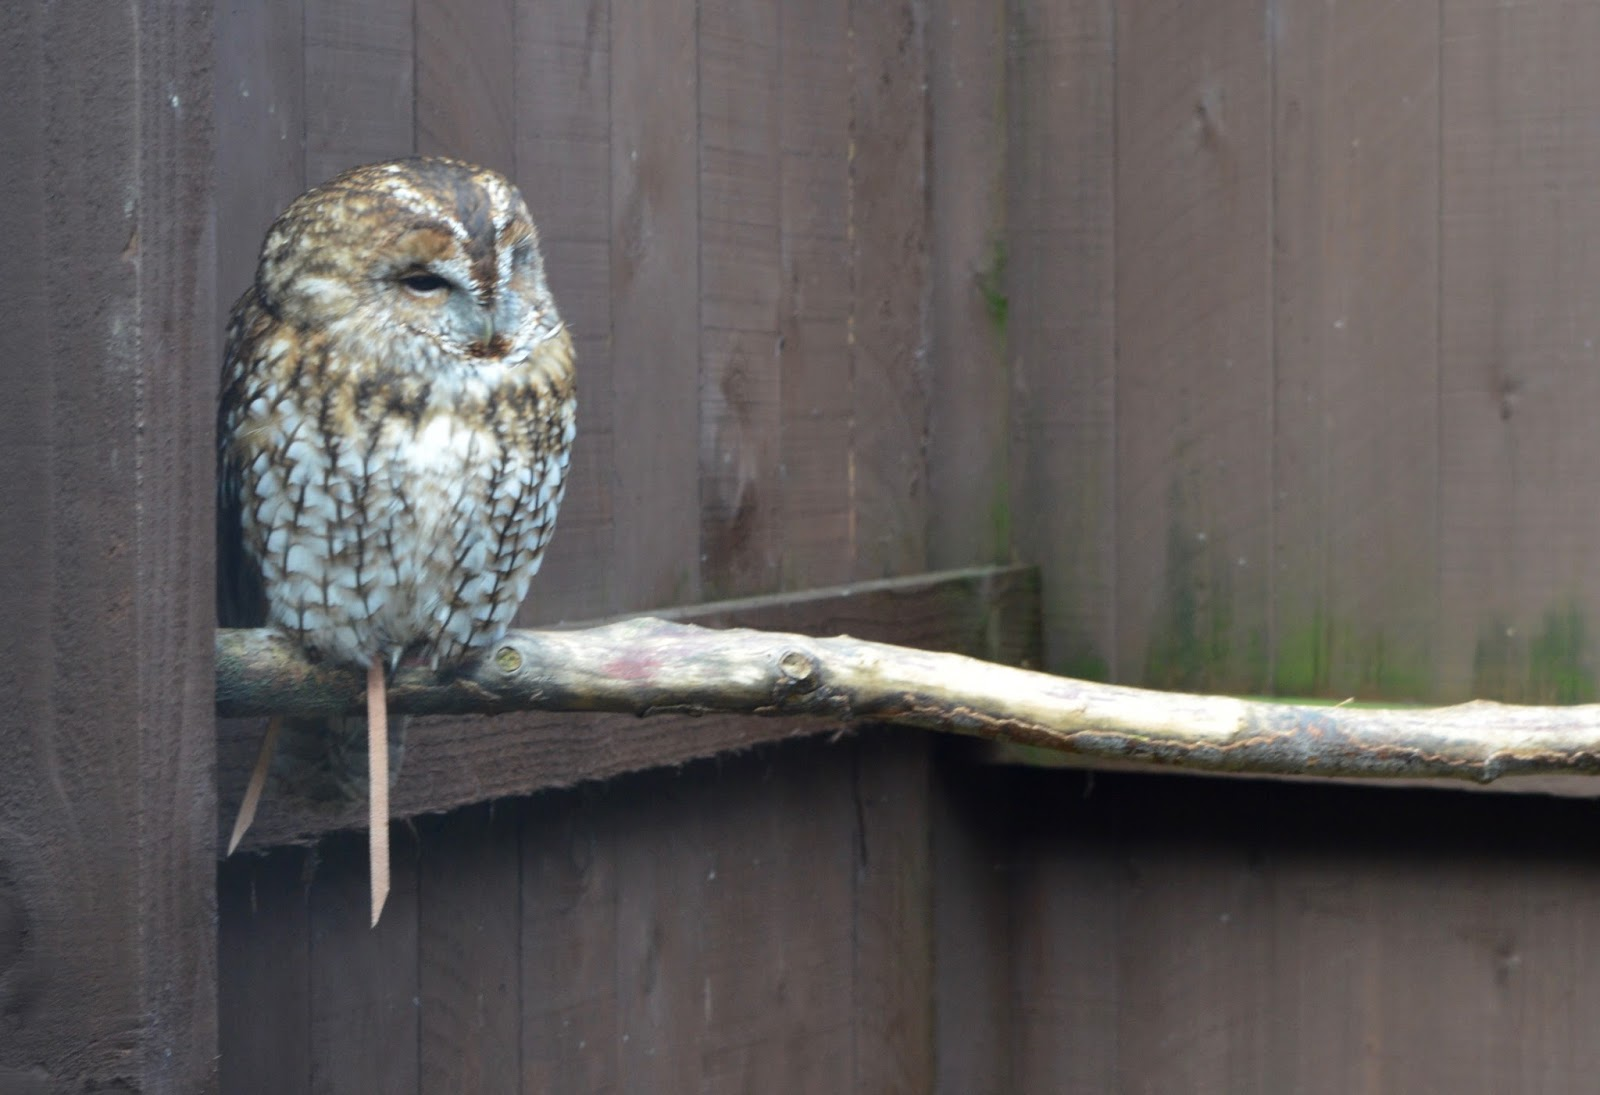 Visiting Angry Birds Activity Park at Lightwater Valley, North Yorkshire - Birds of Prey Centre